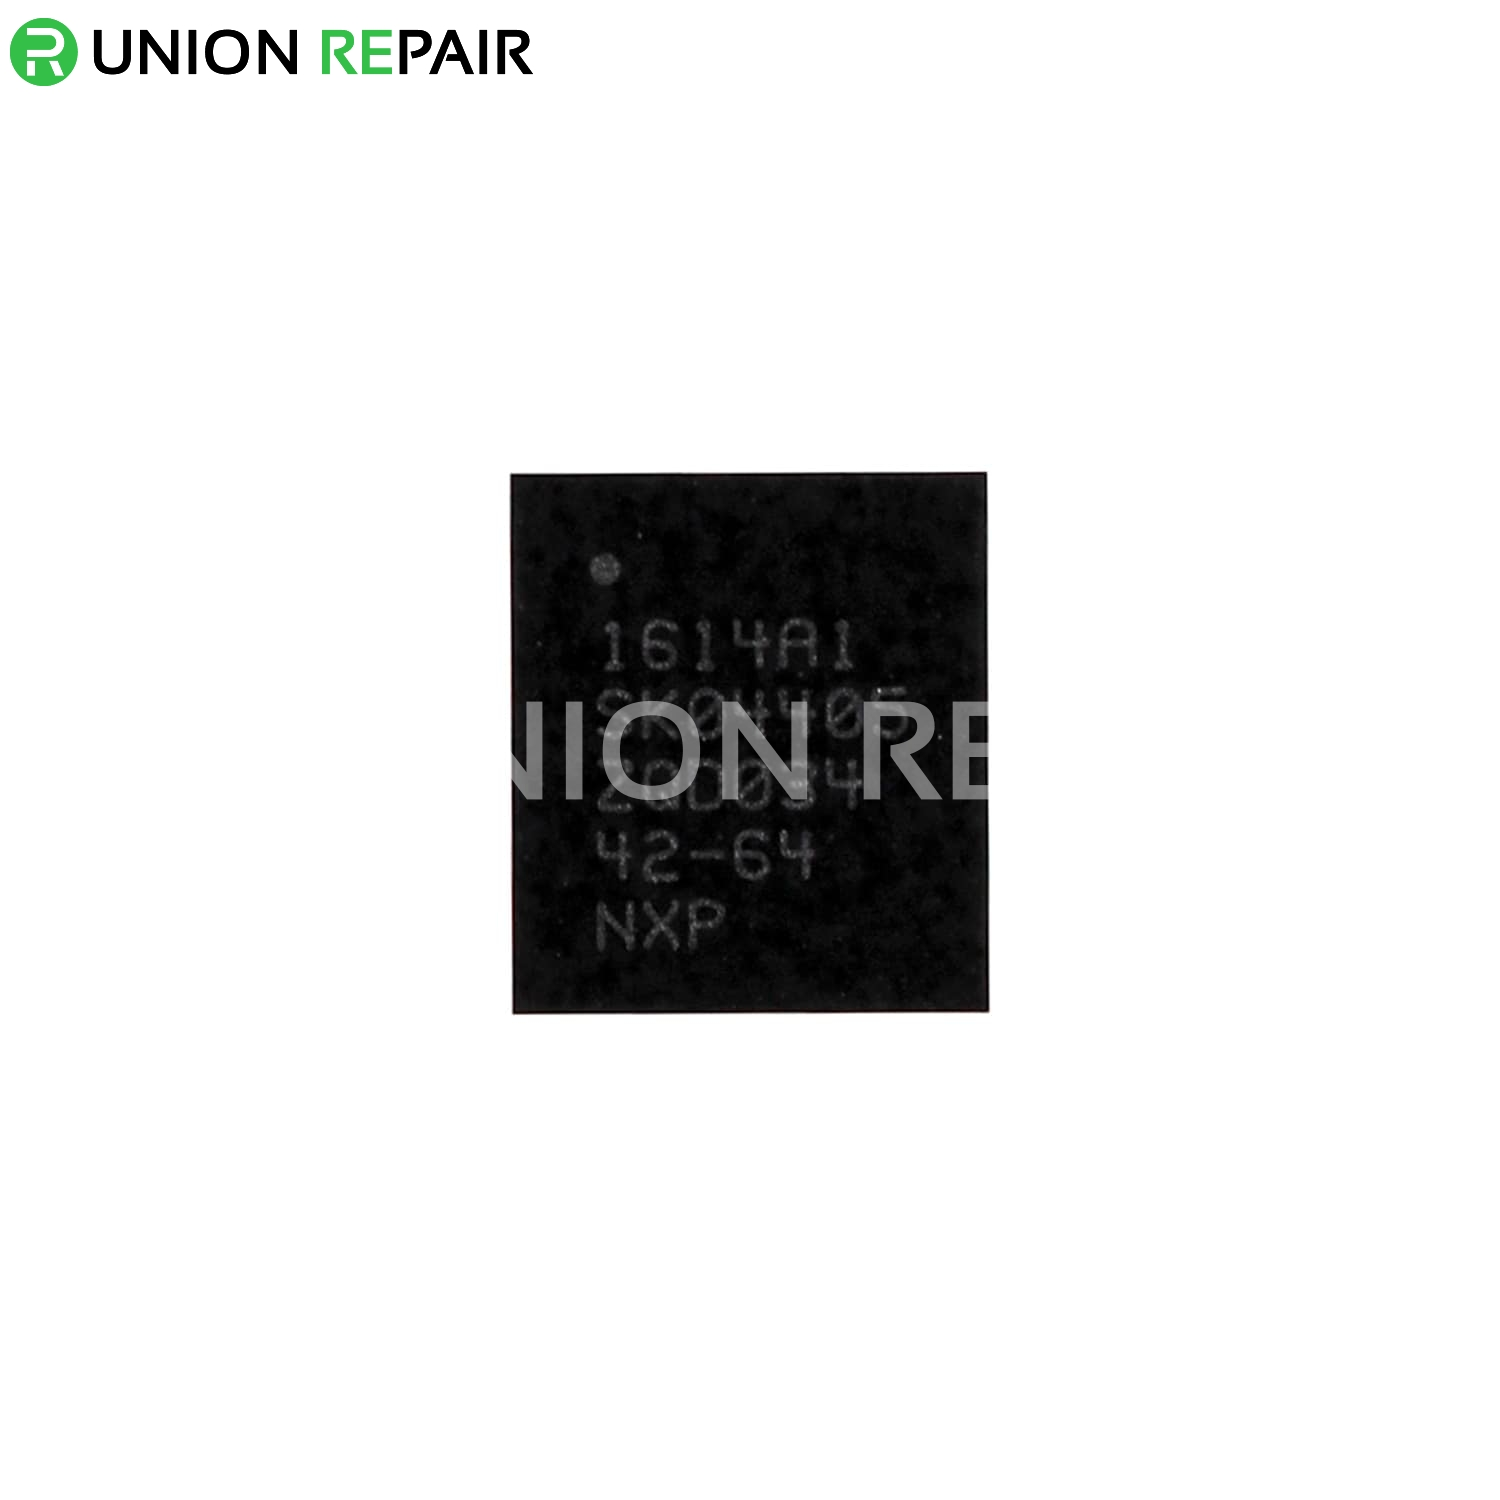 Replacement for iPhone 12/12Mini/12Pro U2 IC #1614A1